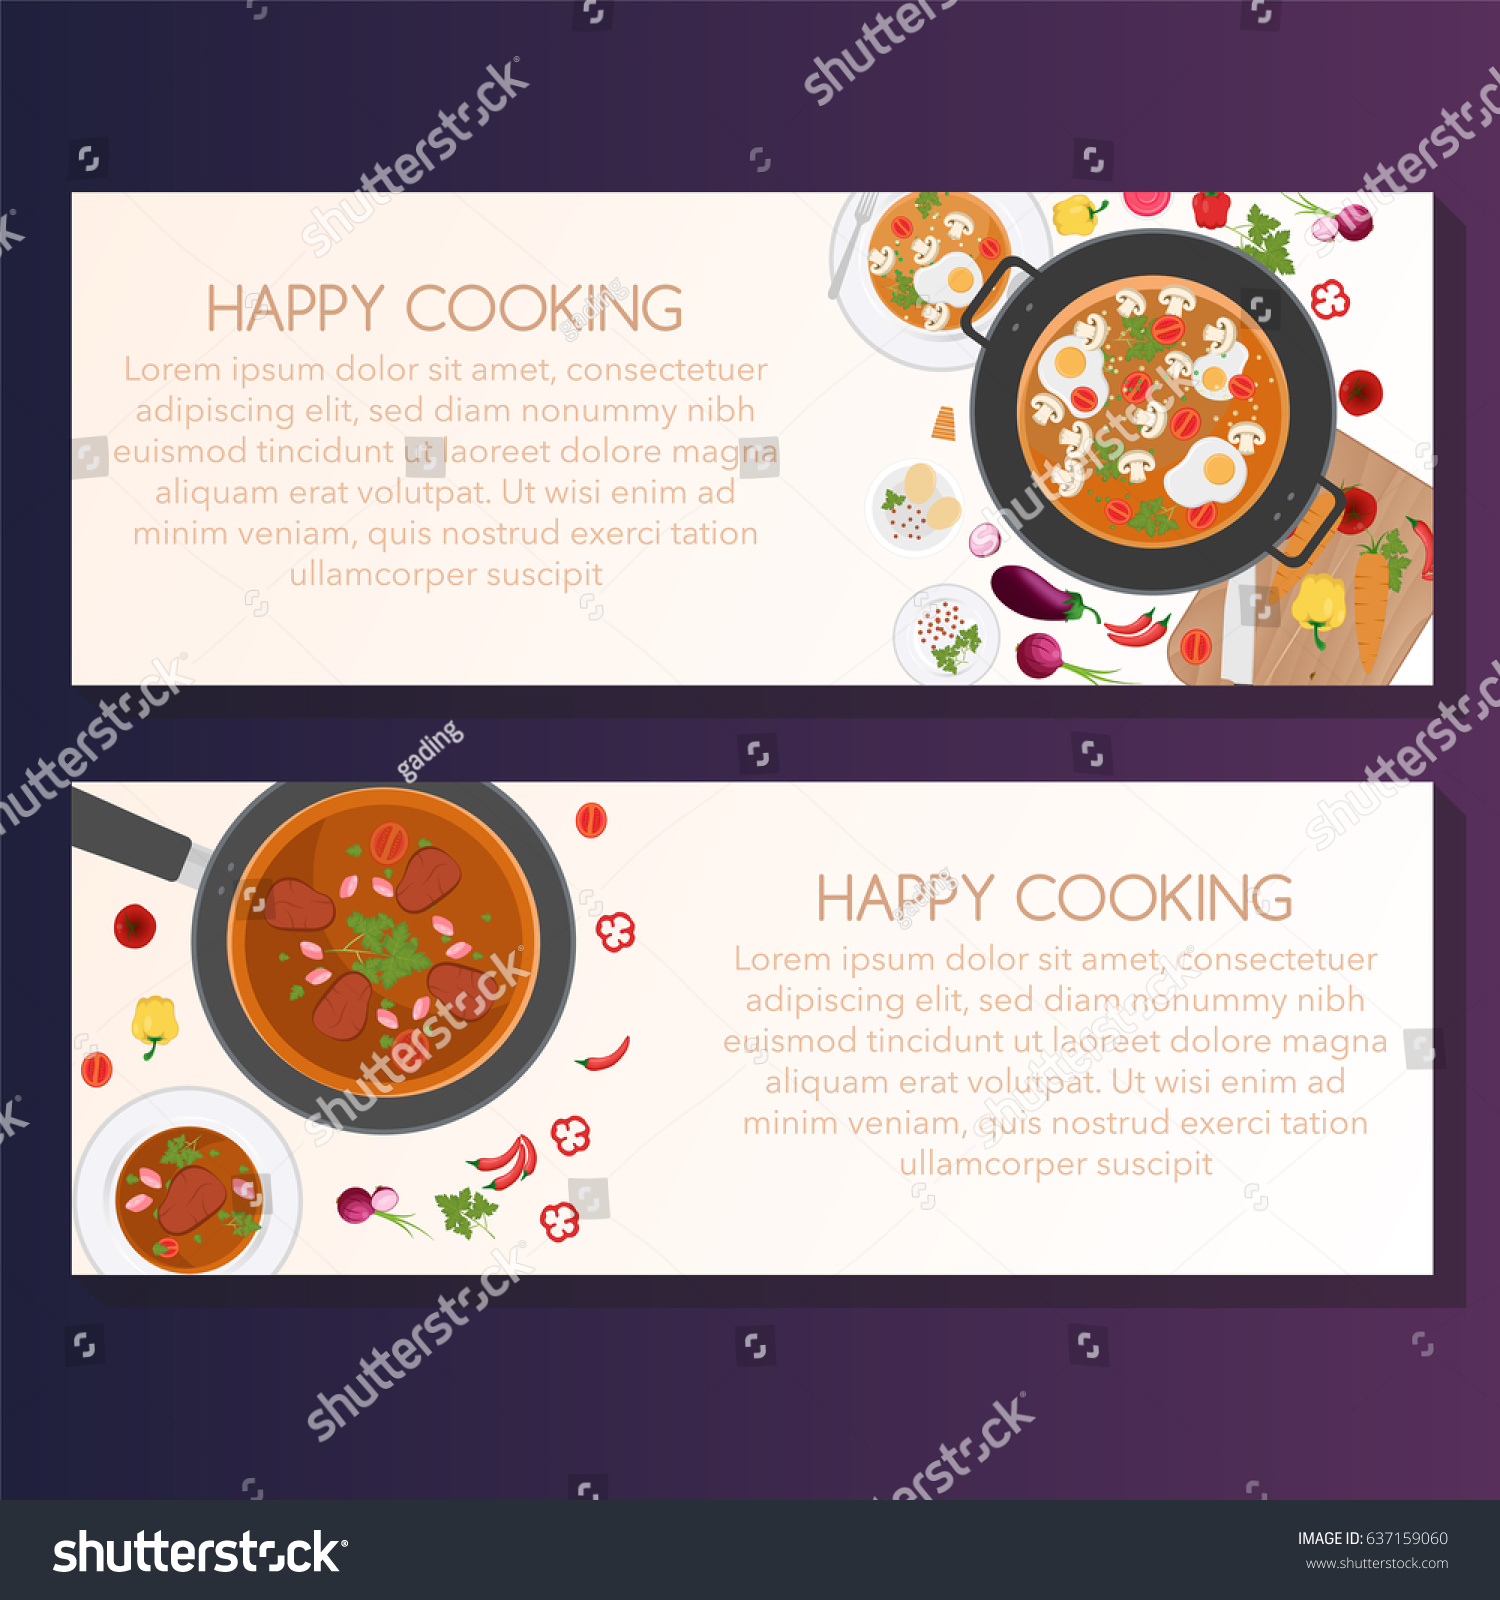 Cooking Banner Template Vector Illustration Set Stock Vector Royalty Free 637159060